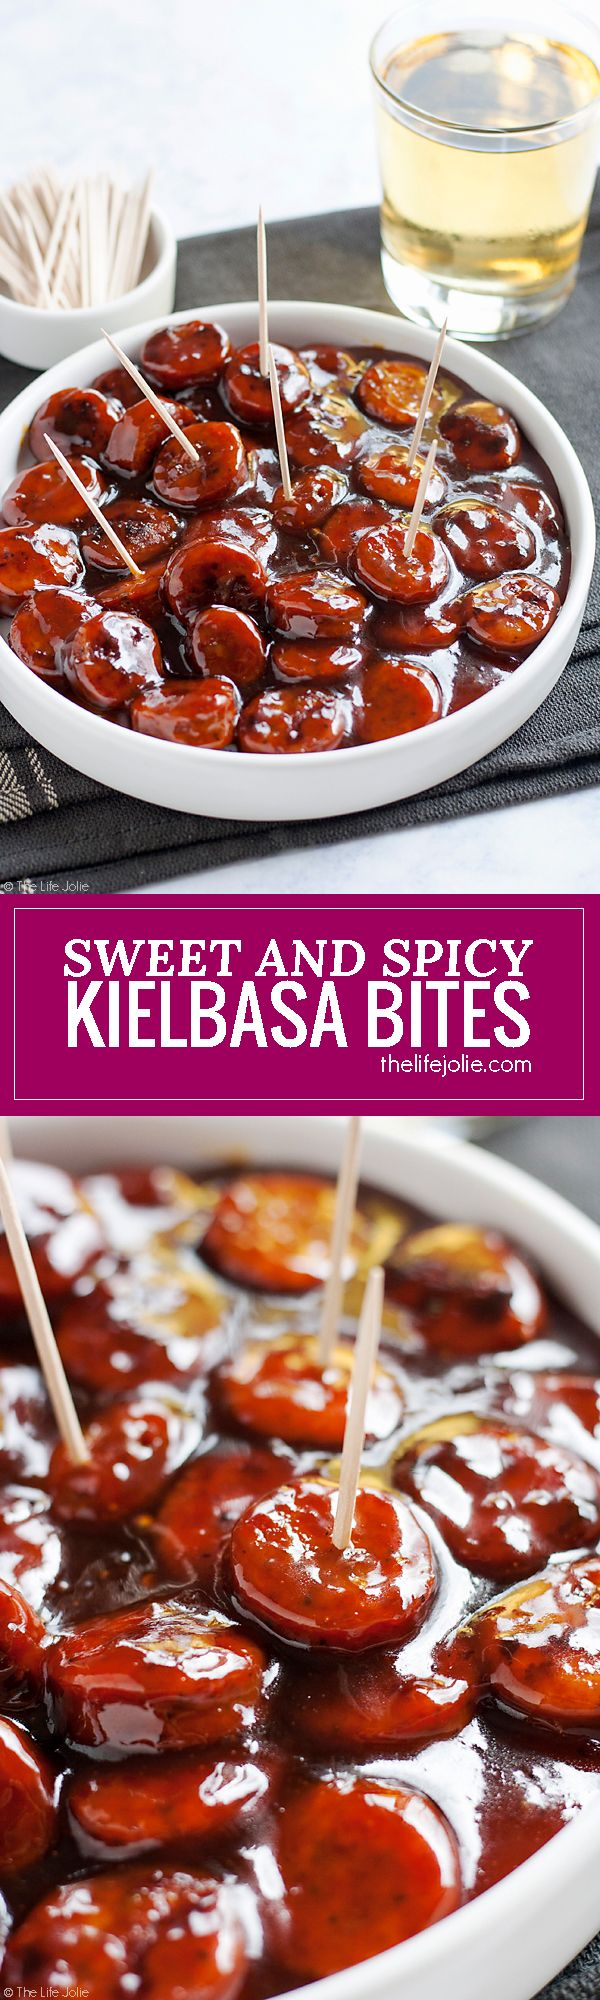 These Sweet and Spicy Kielbasa Bites are such an easy recipe! Just 3 simple ingredients and they're ready in around 20 minutes. These glazed sausage bites are sure to be at hit at any holiday or game day party!